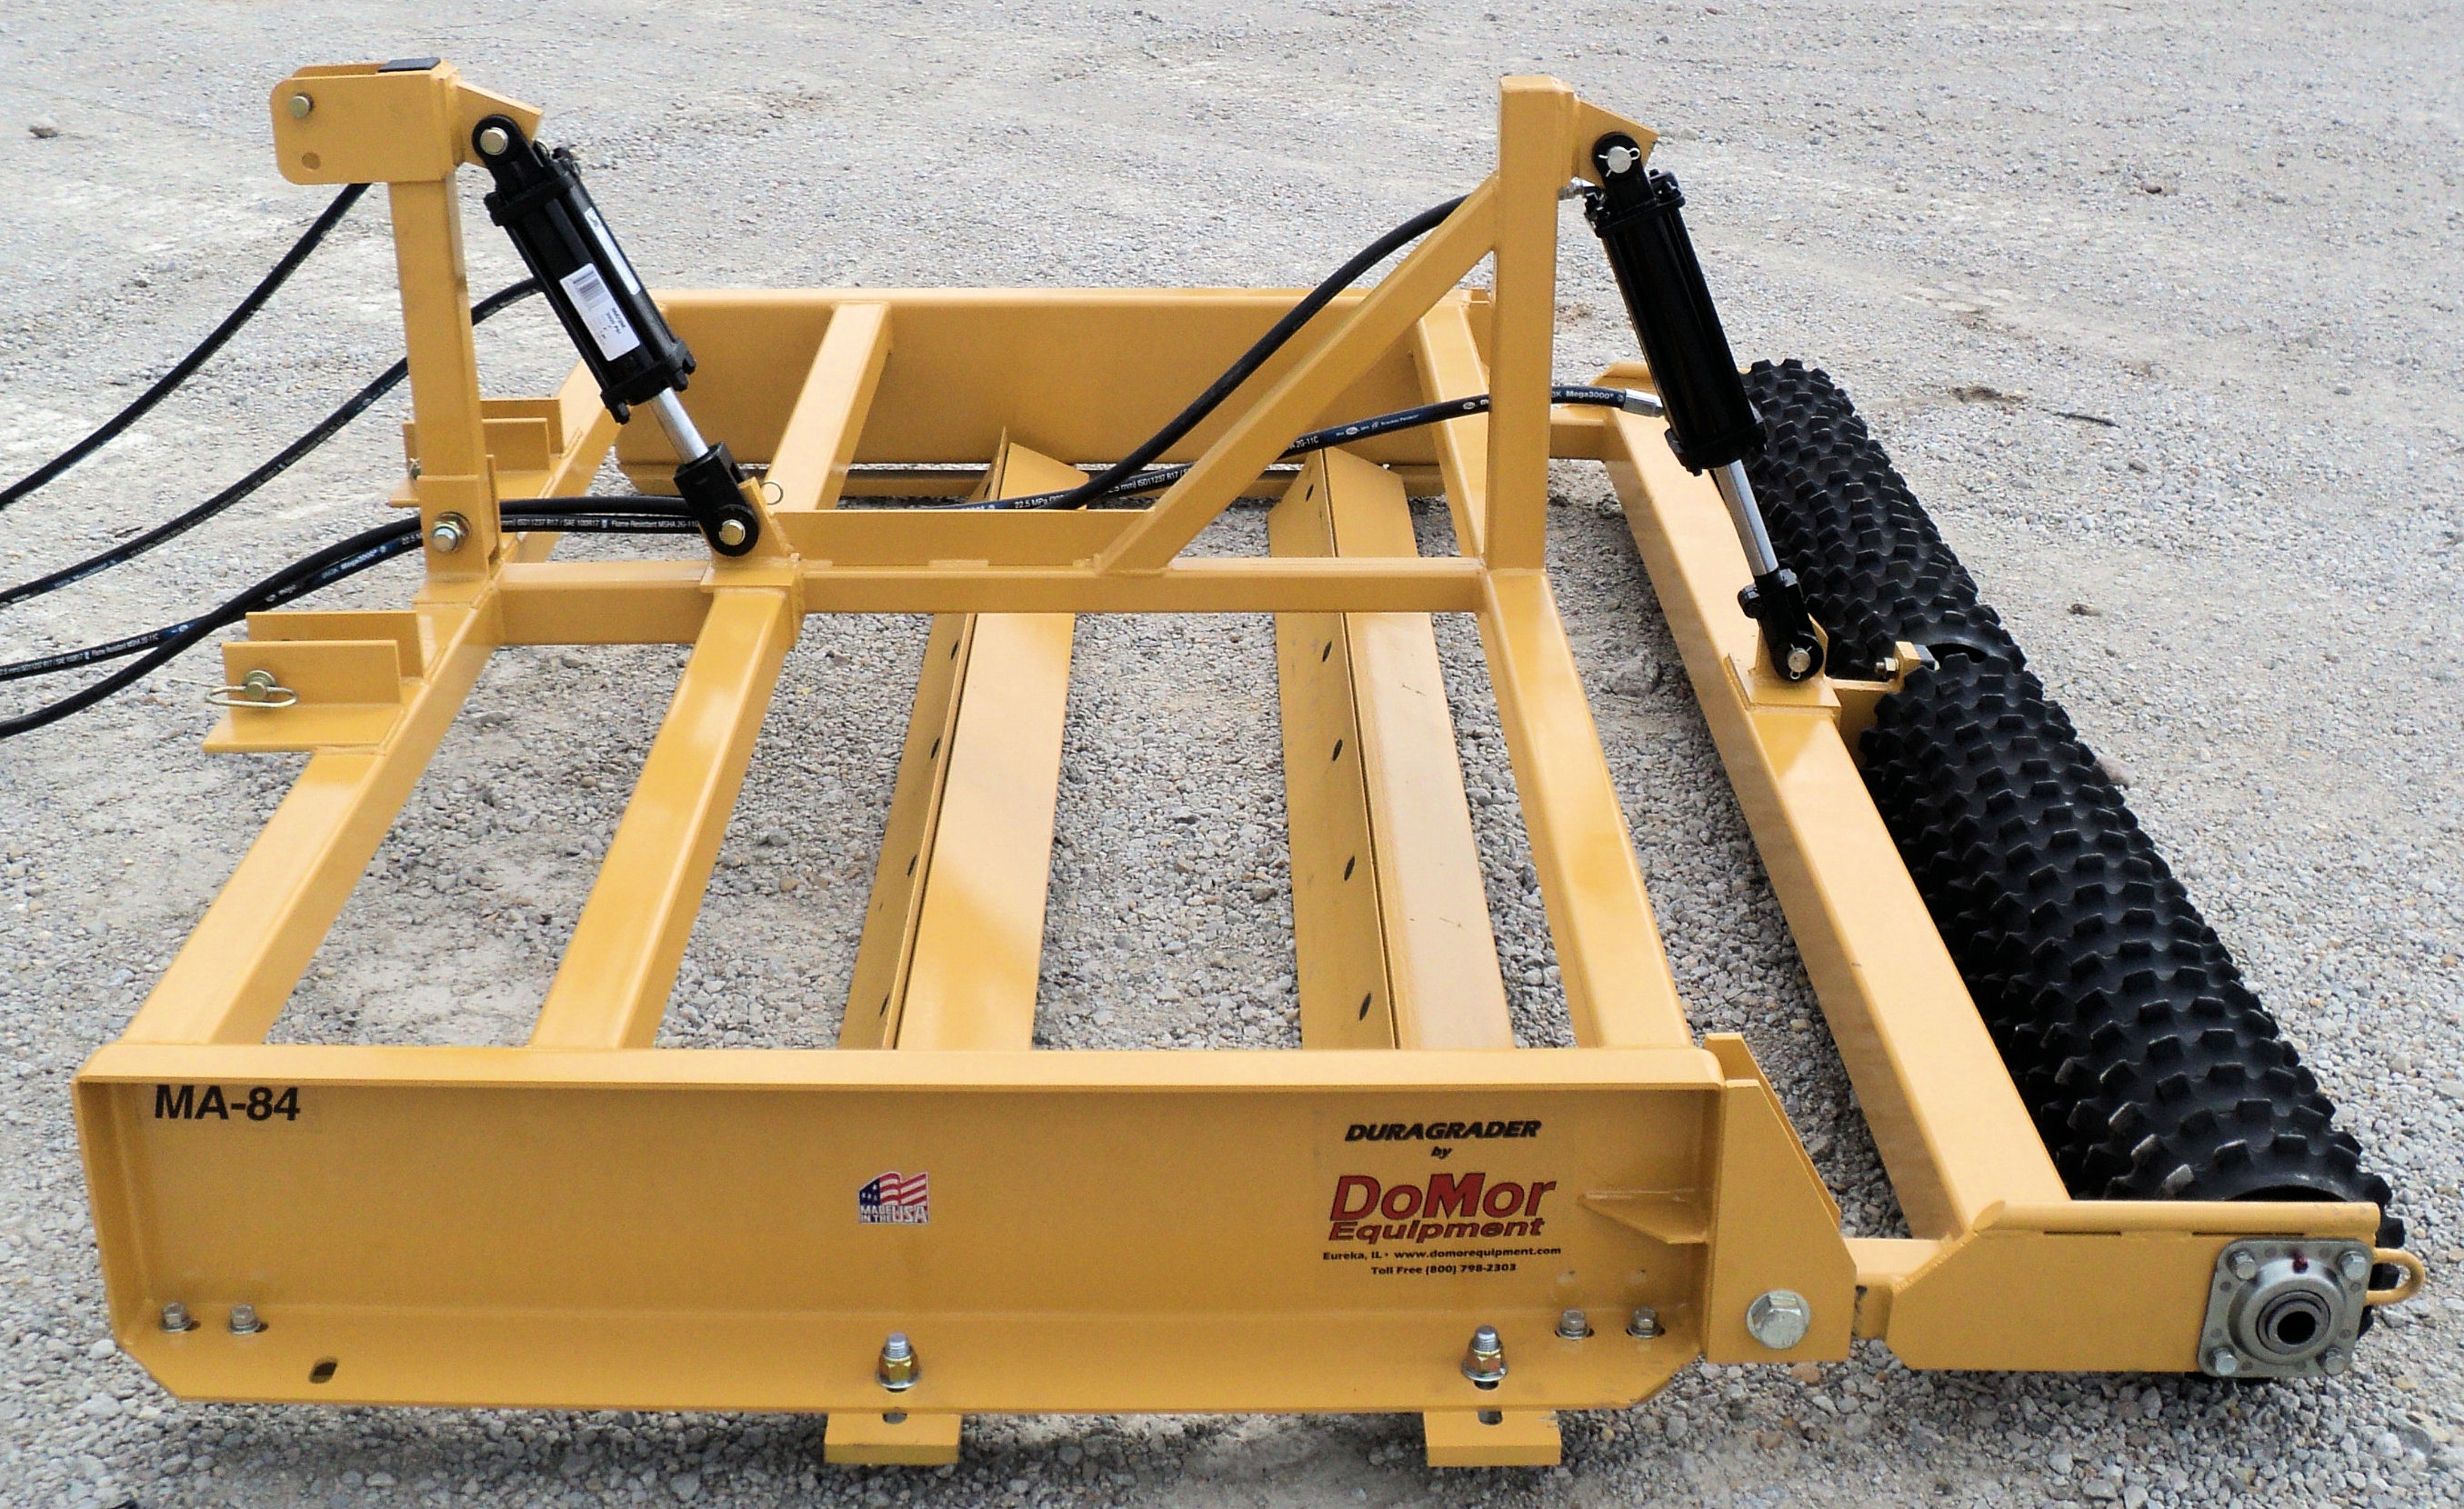 The Culti-Packer Add-On Attachment works great for puverizing and breaking up clumps and clods and also can be used to pack seeds to the proper depth for maximum seed growth.